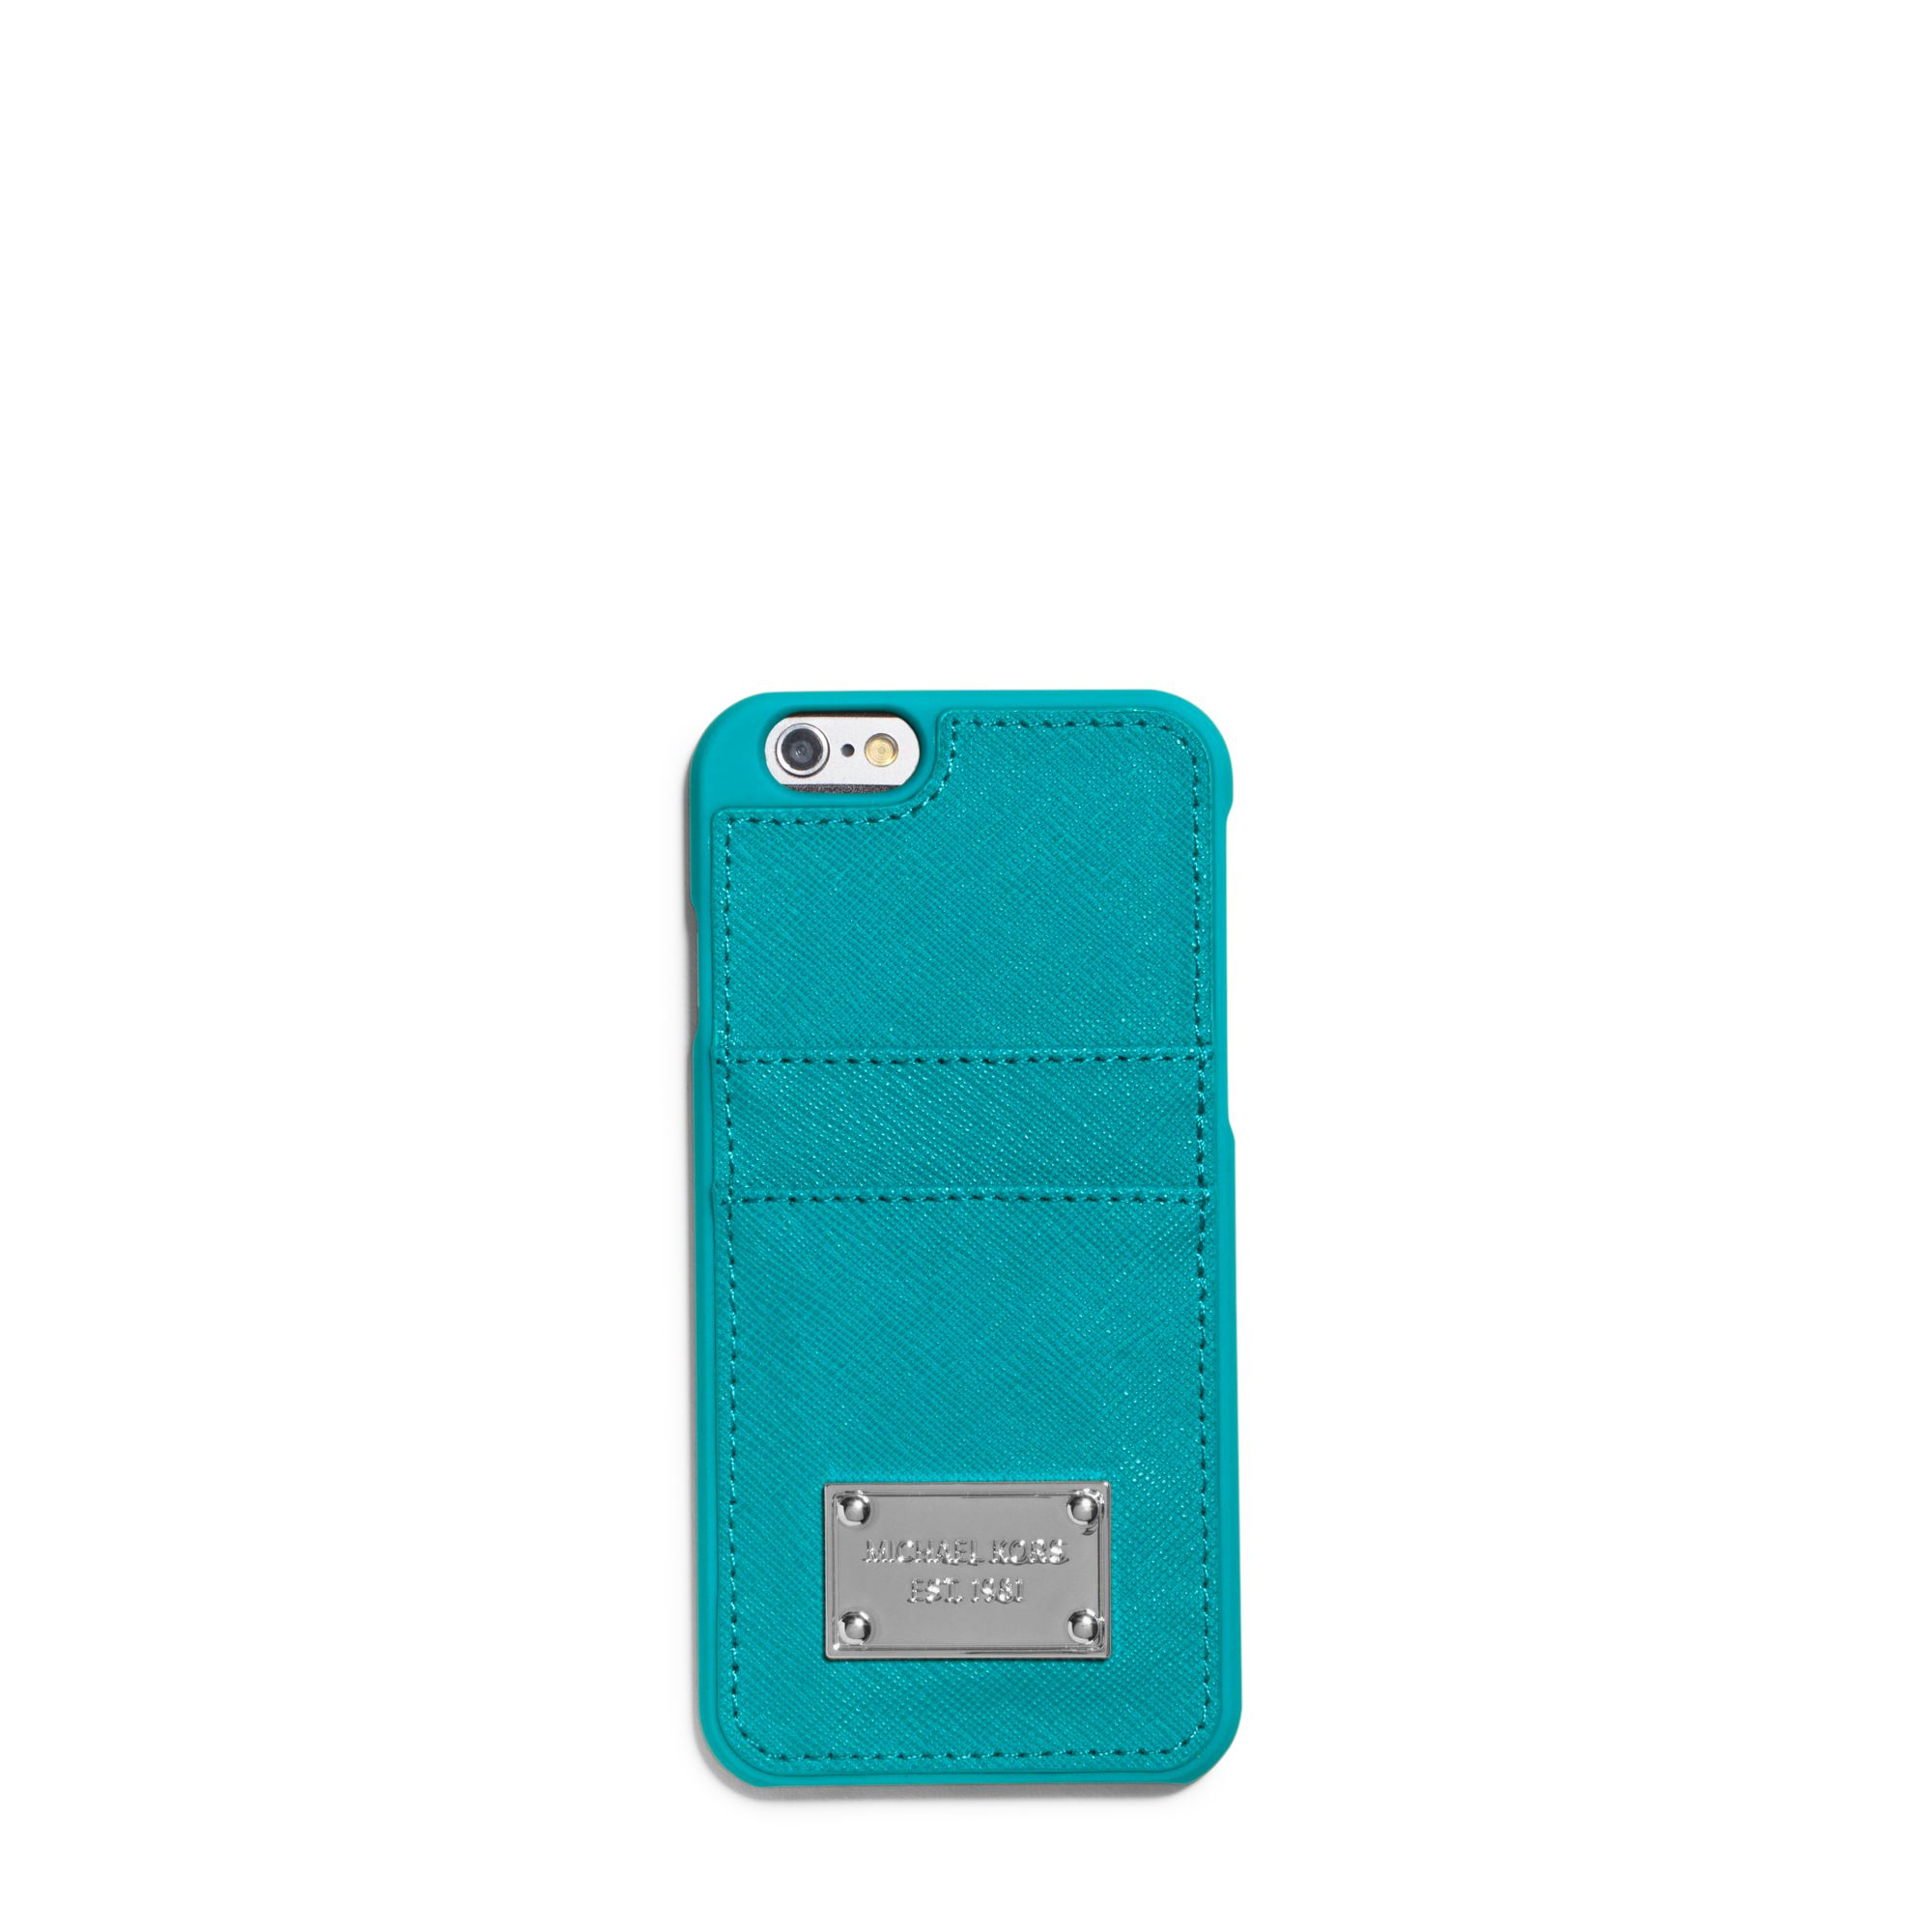 7888931028a3 Michael Kors Saffiano Leather Pocket Smartphone Case in Blue - Lyst